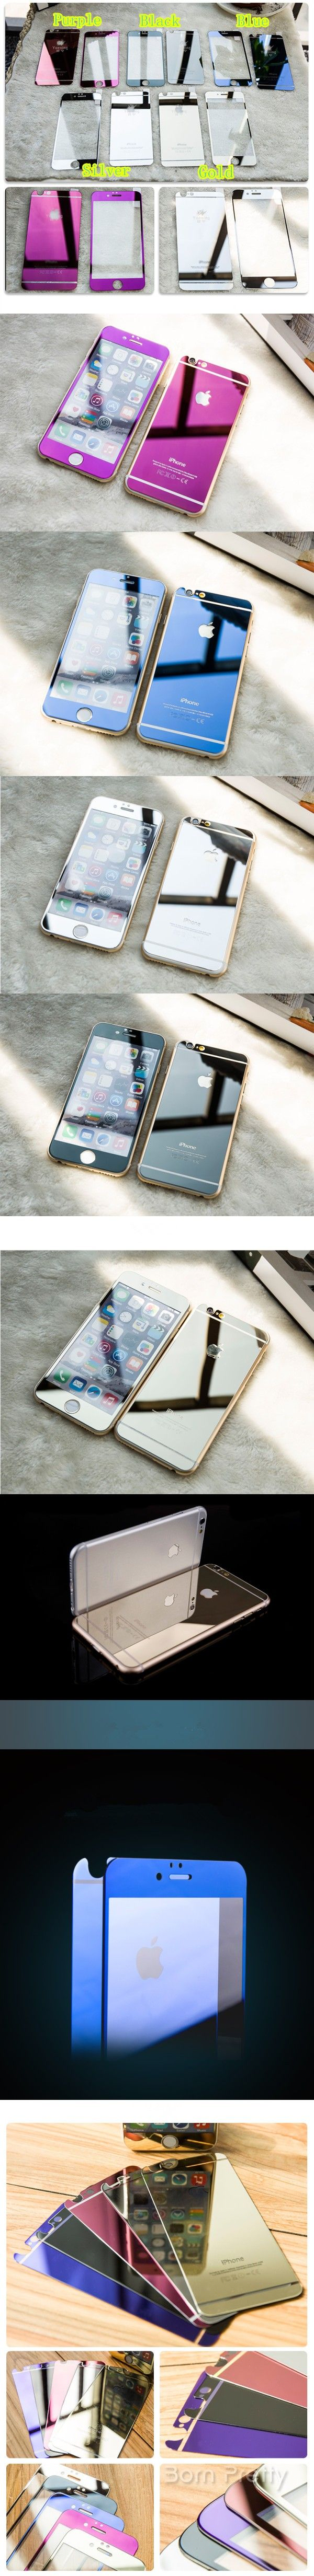 $12.72 Front & Back Screen Protector For iPhone 6/iPhone 6 Plus Tempered Glass Screen Protector Film - BornPrettyStore.com